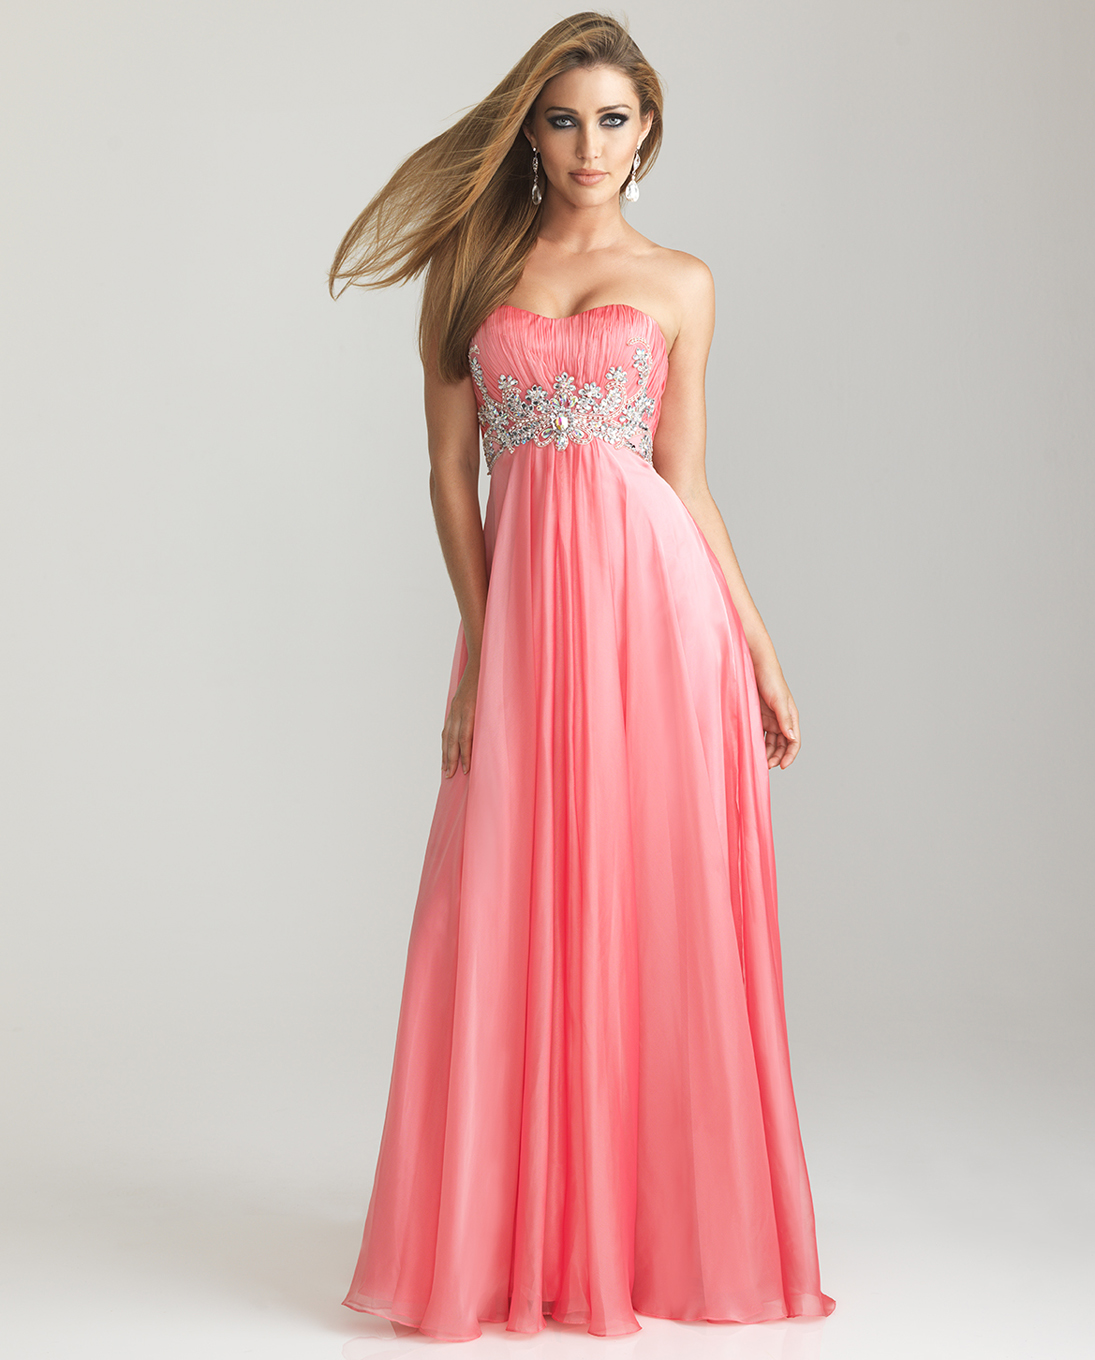 Best Prom Dresses For Short Girls - Holiday Dresses